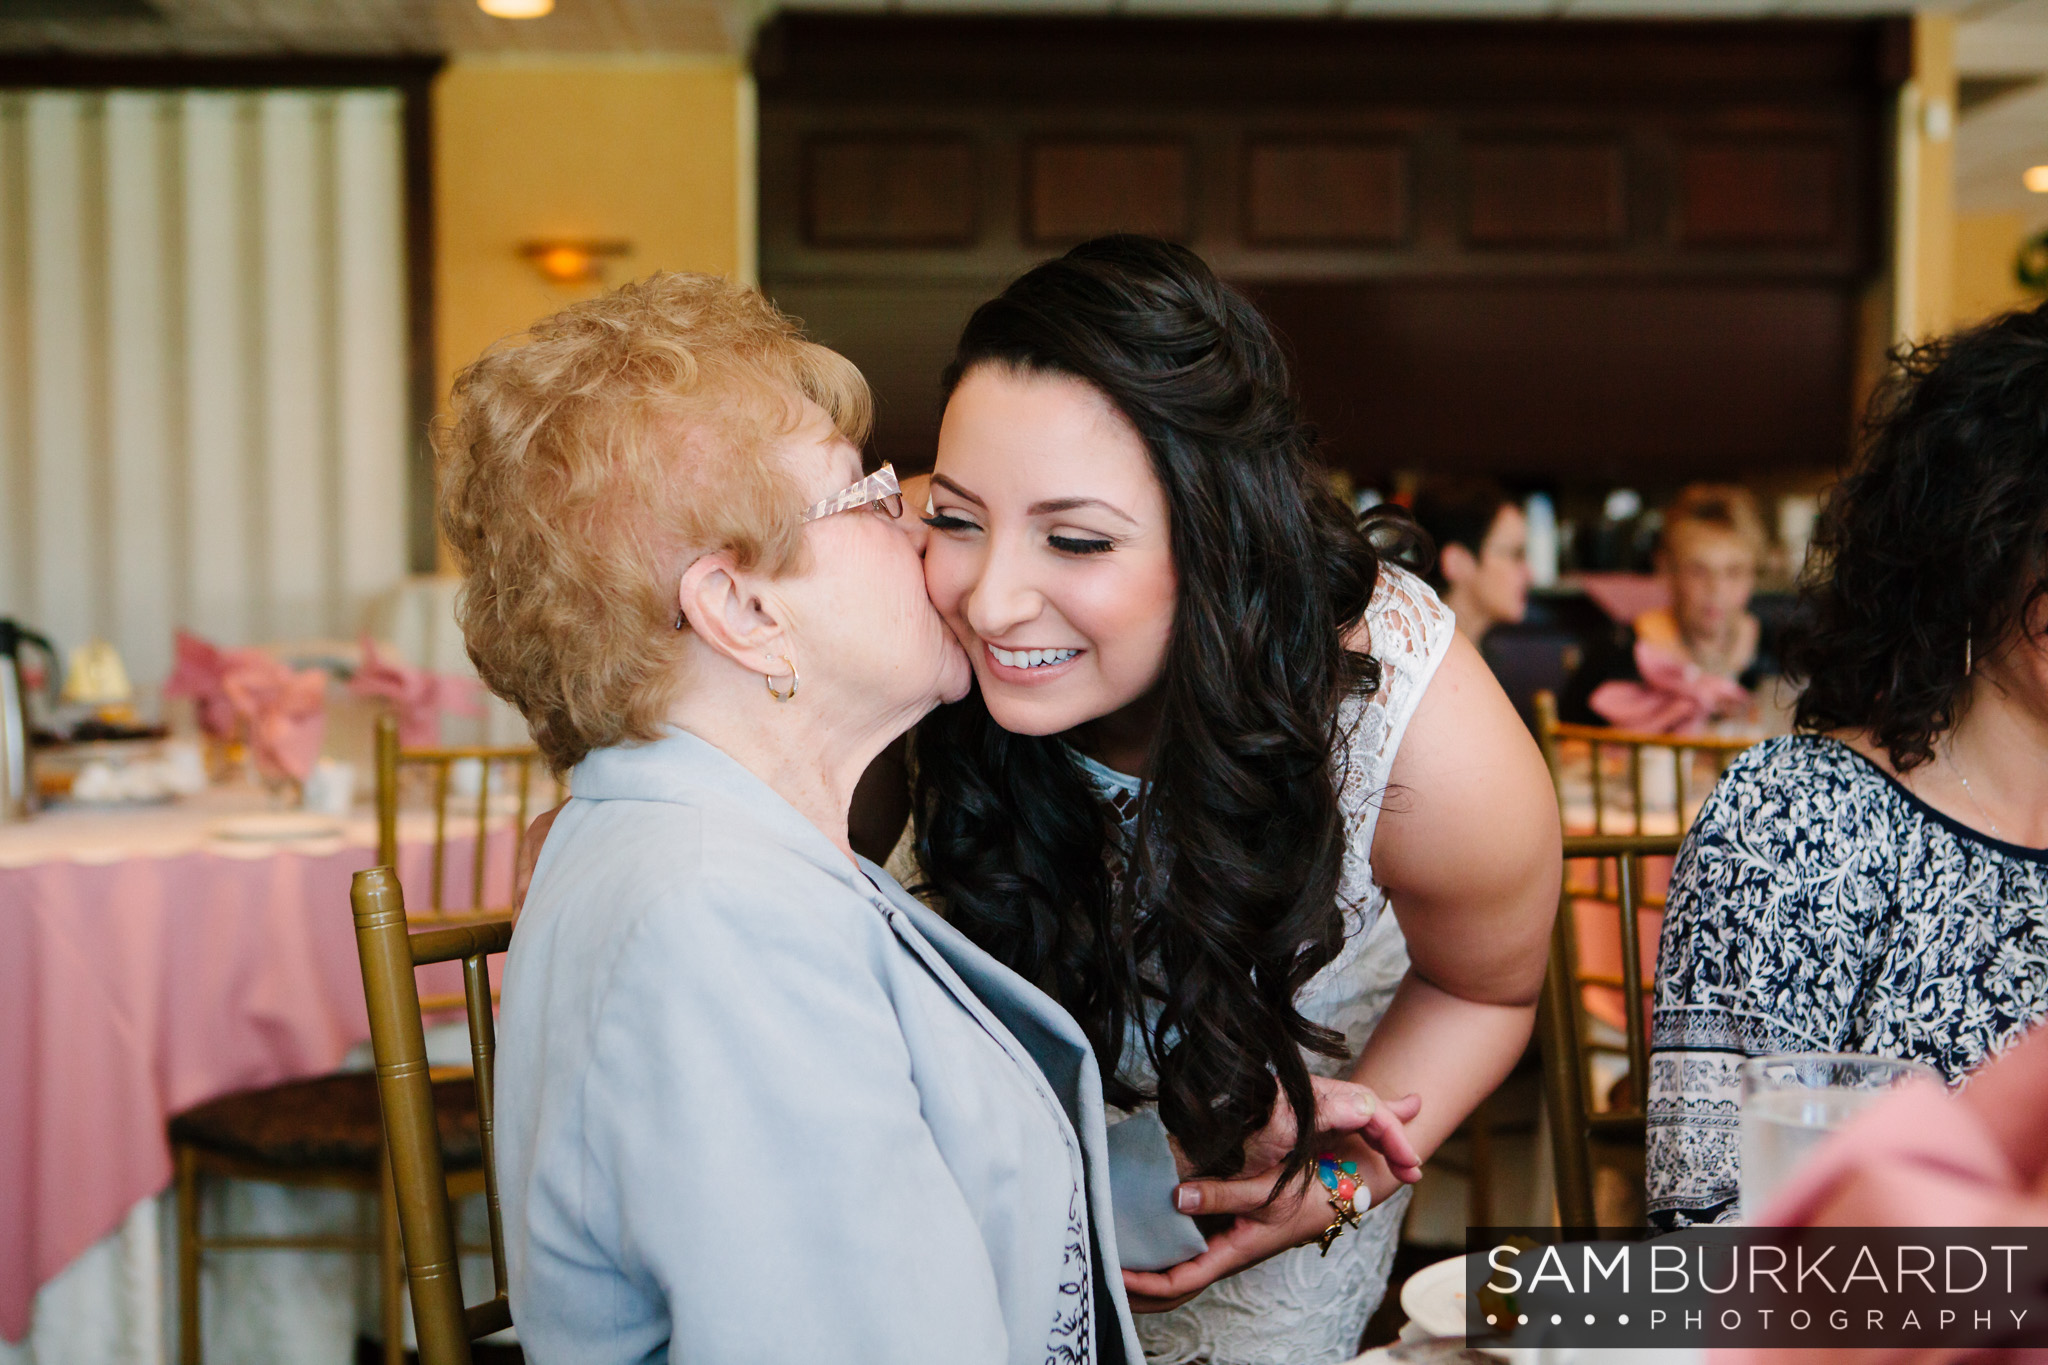 samburkardt_bridal_shower_trumbull_connecticut_photography_wedding_0022.jpg